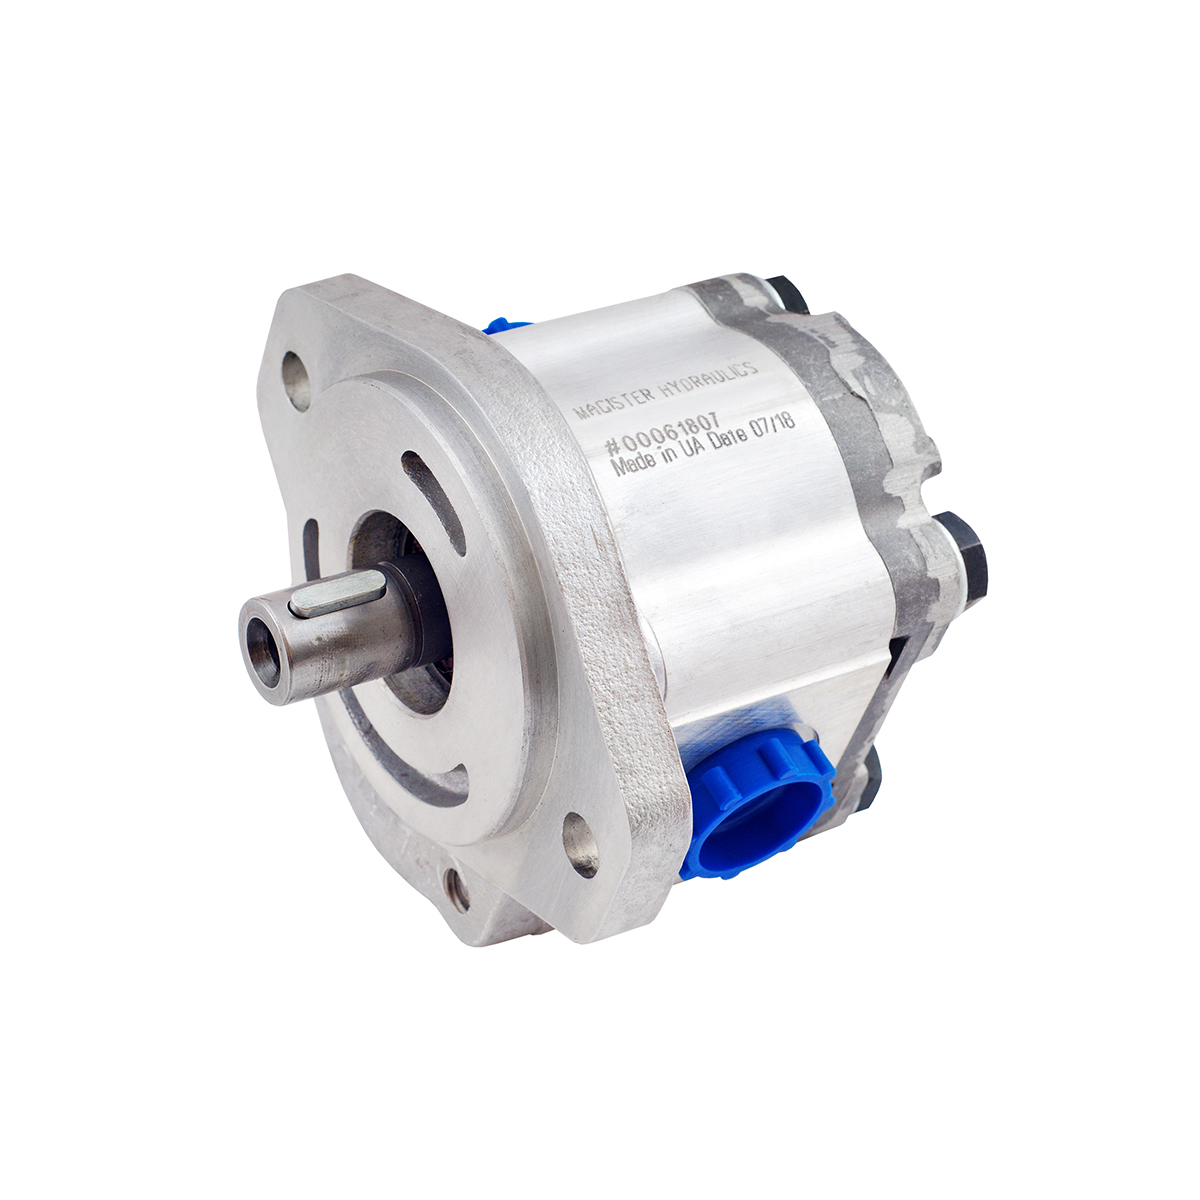 0.97 CID hydraulic gear pump, 5/8 keyed shaft counter-clockwise gear pump | Magister Hydraulics